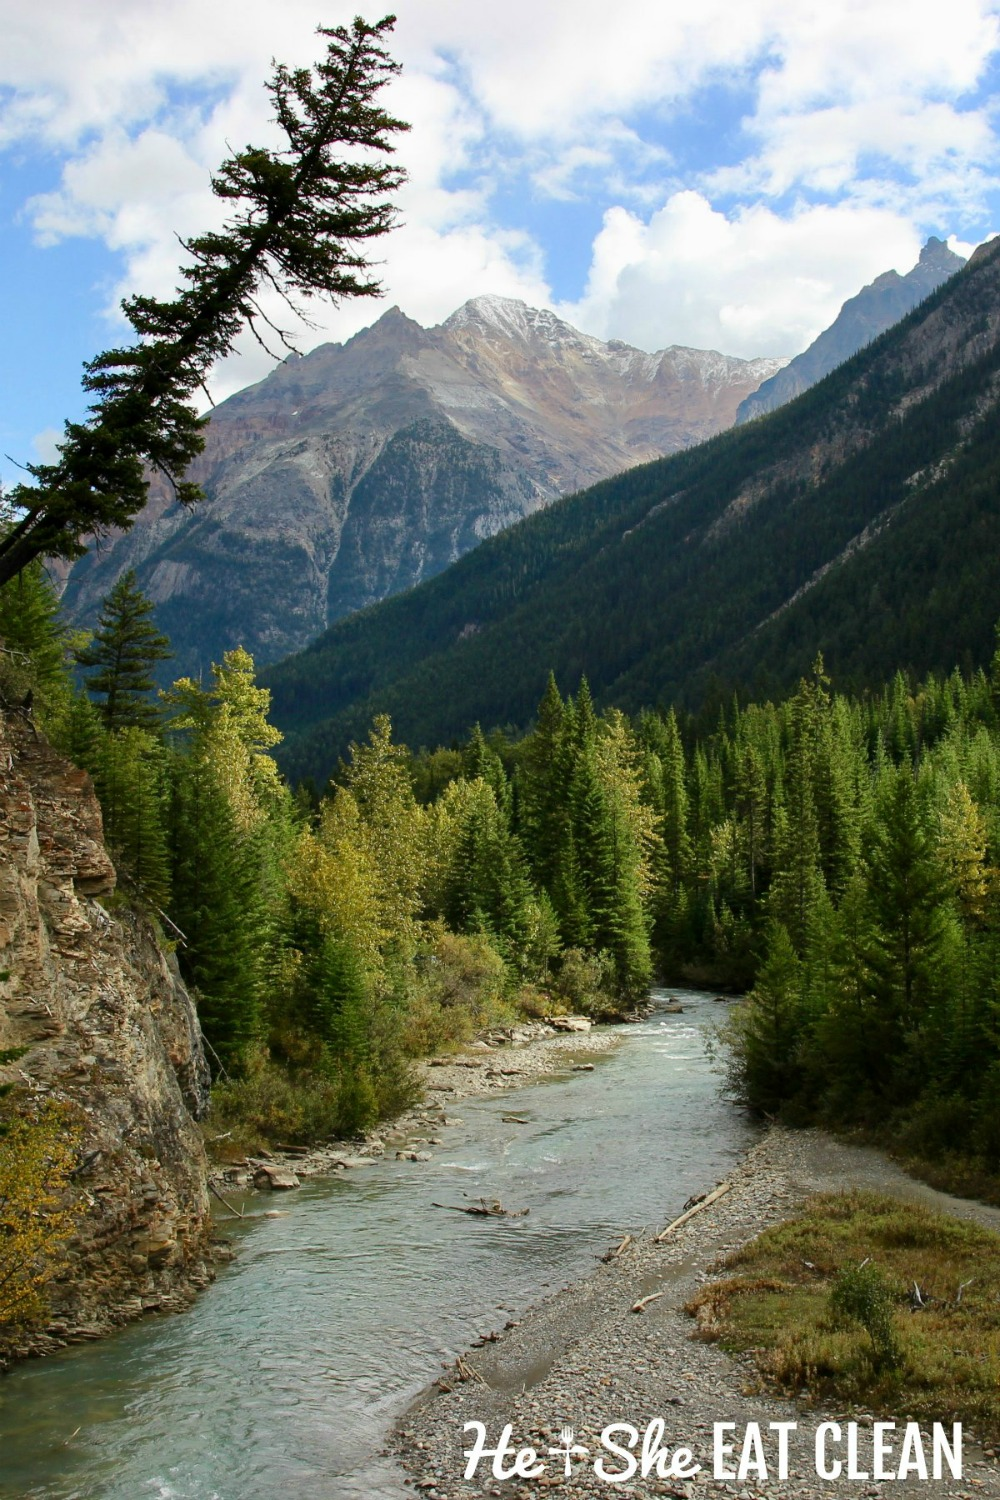 landscape photo of river running through the mountains and green trees at the start of Lake of the Hanging Glacier trail